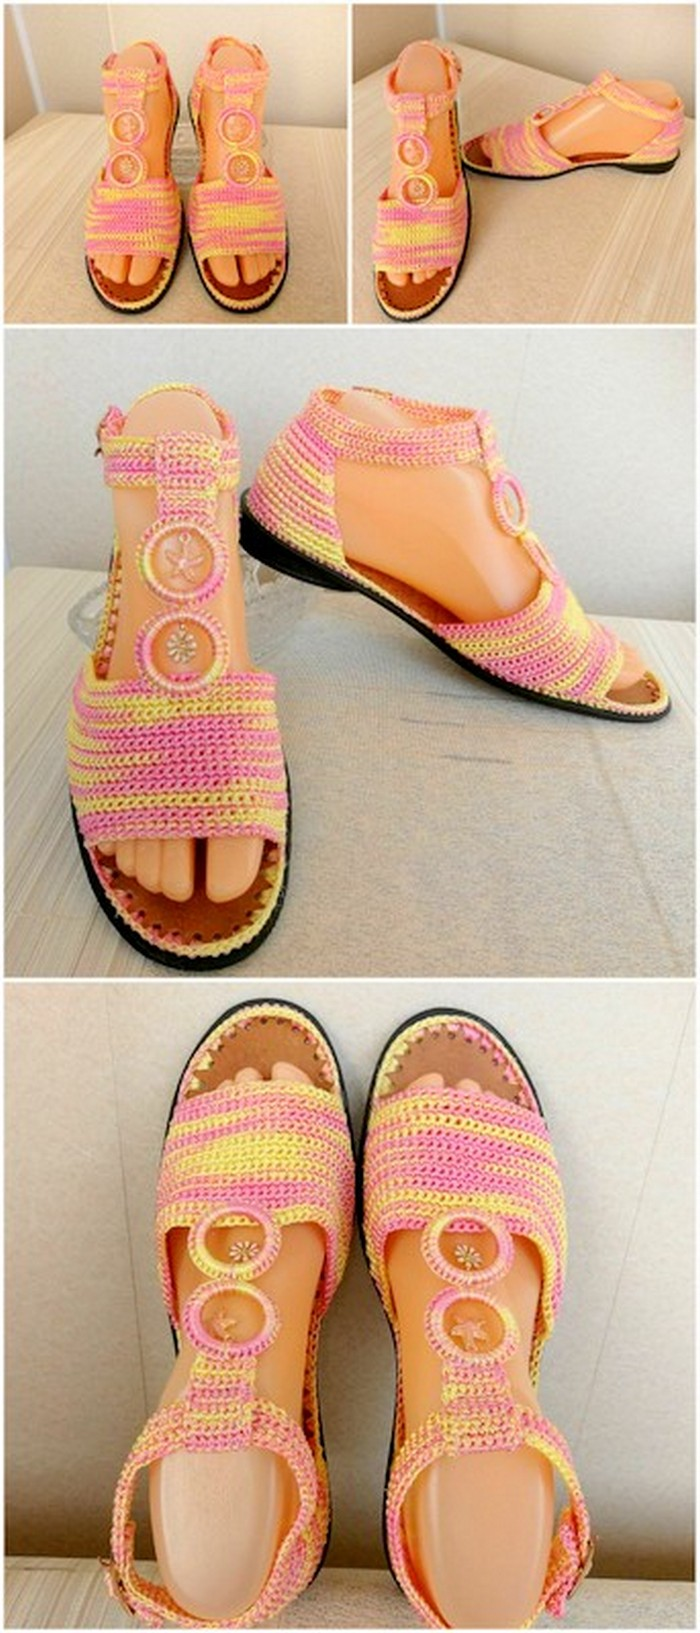 amazing crochet shoes design